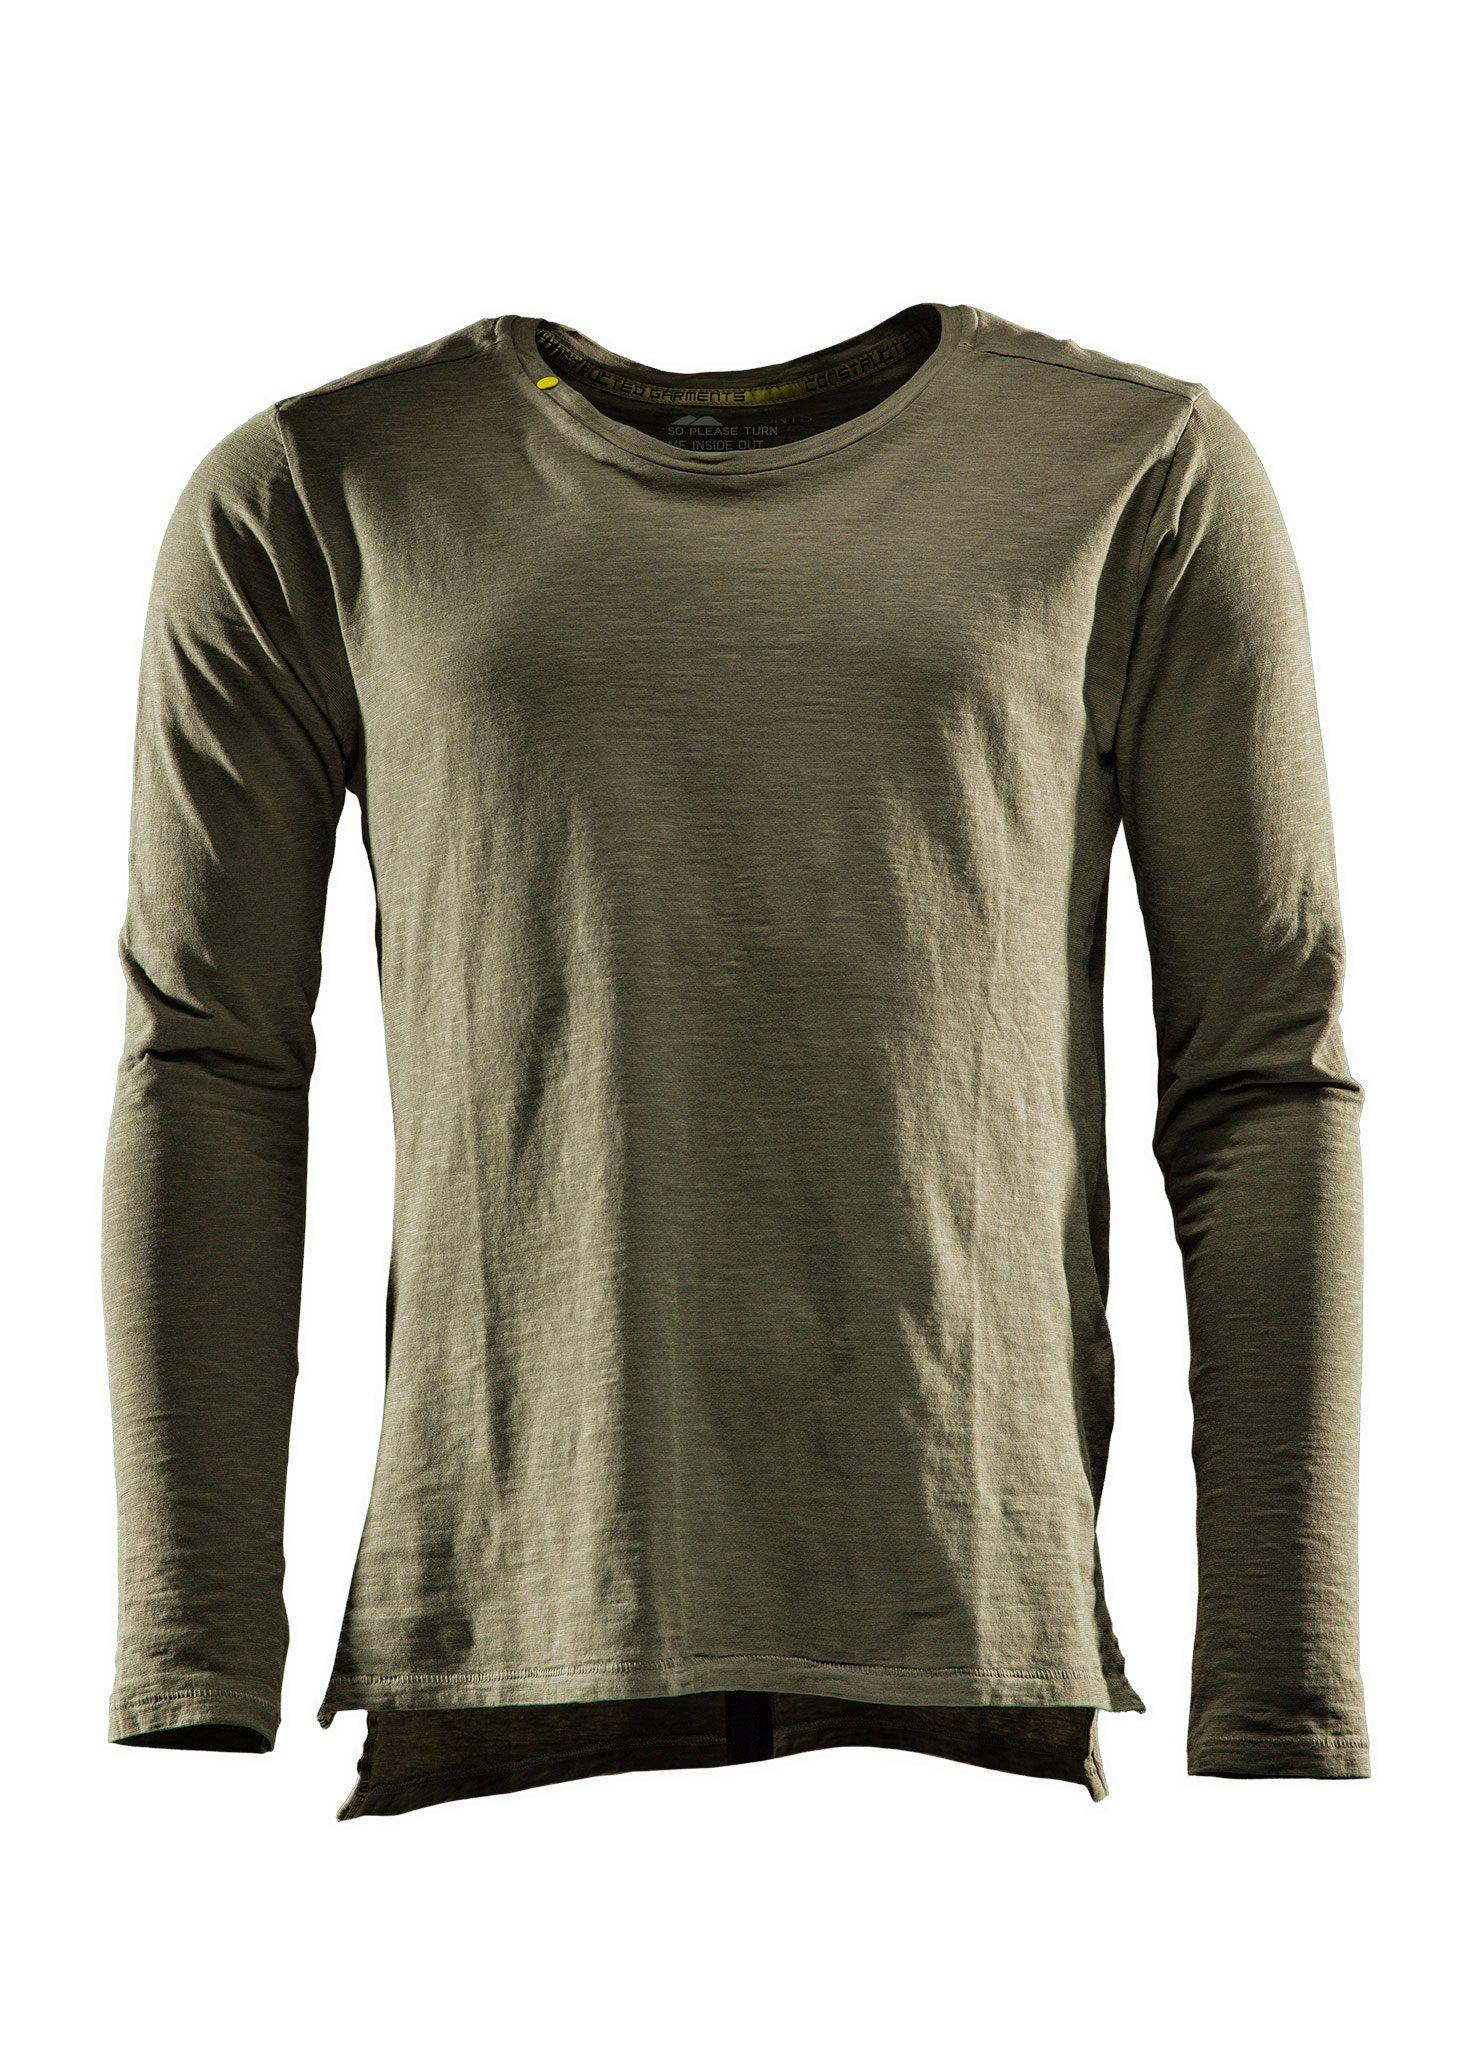 Monitor Comfort tee LS, T-shirt long sleeve, Burnt olive green